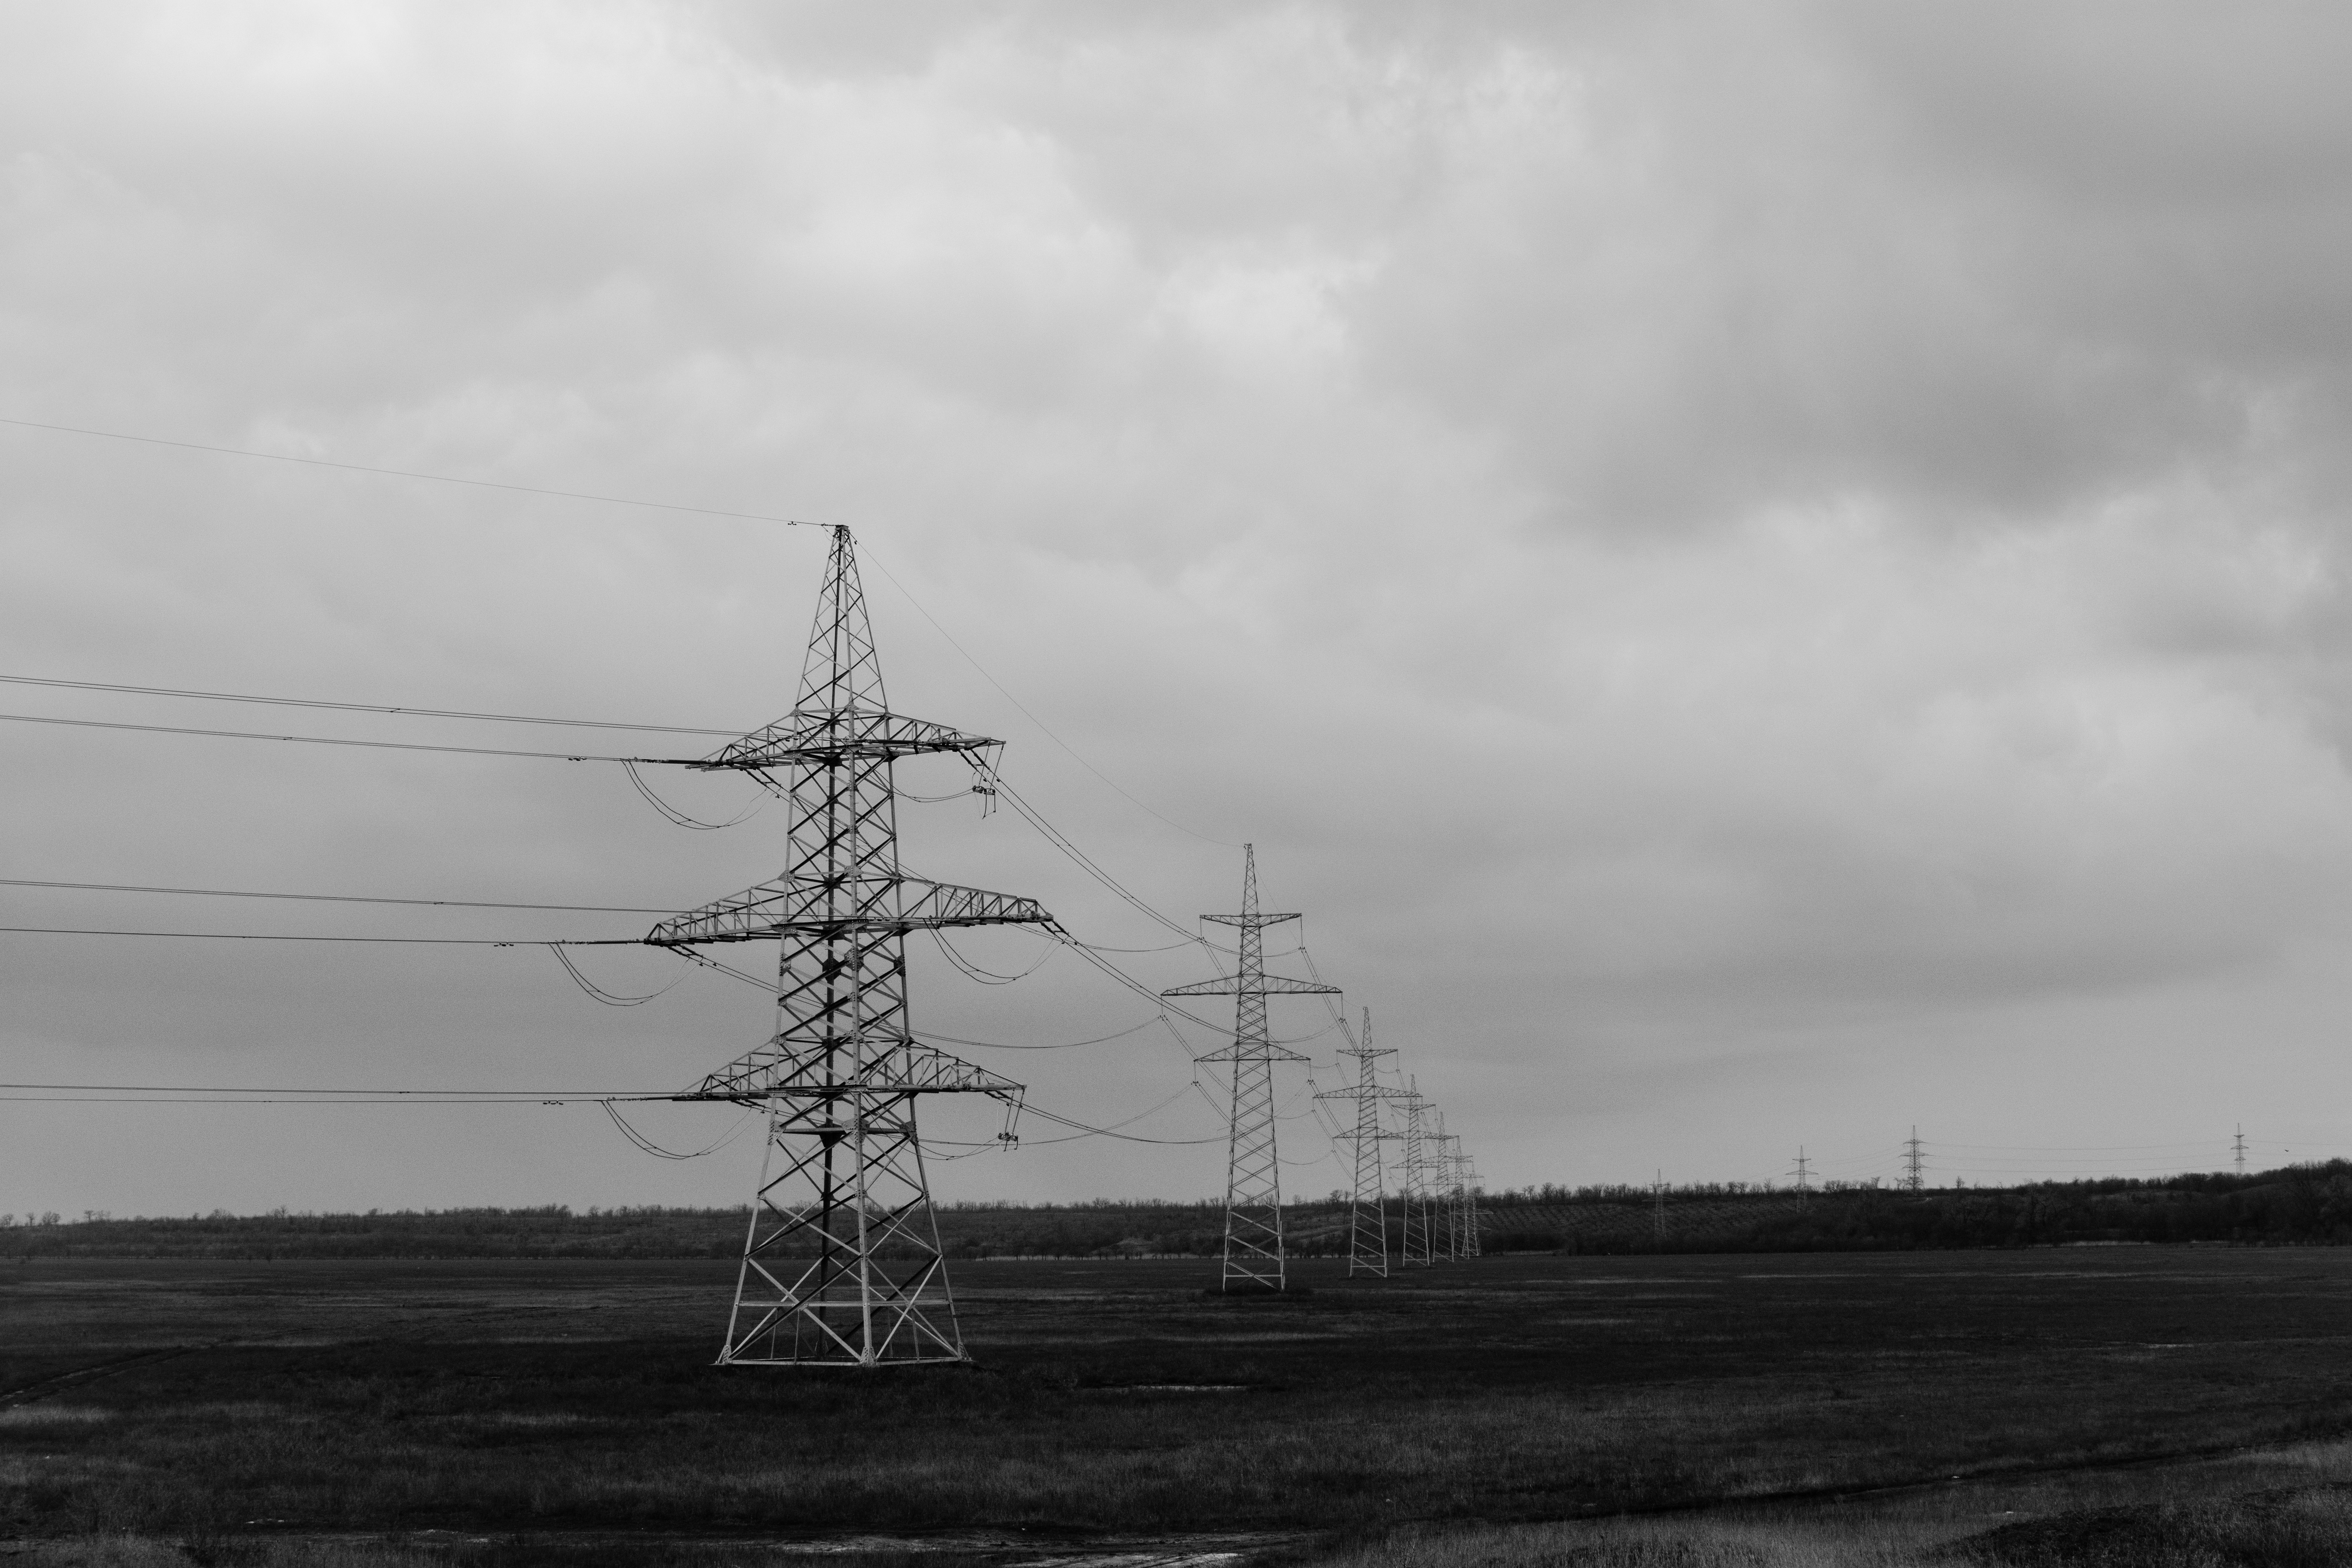 High voltage line, power lines, electrical, fields, grass, clouds, black and white, gray, tower